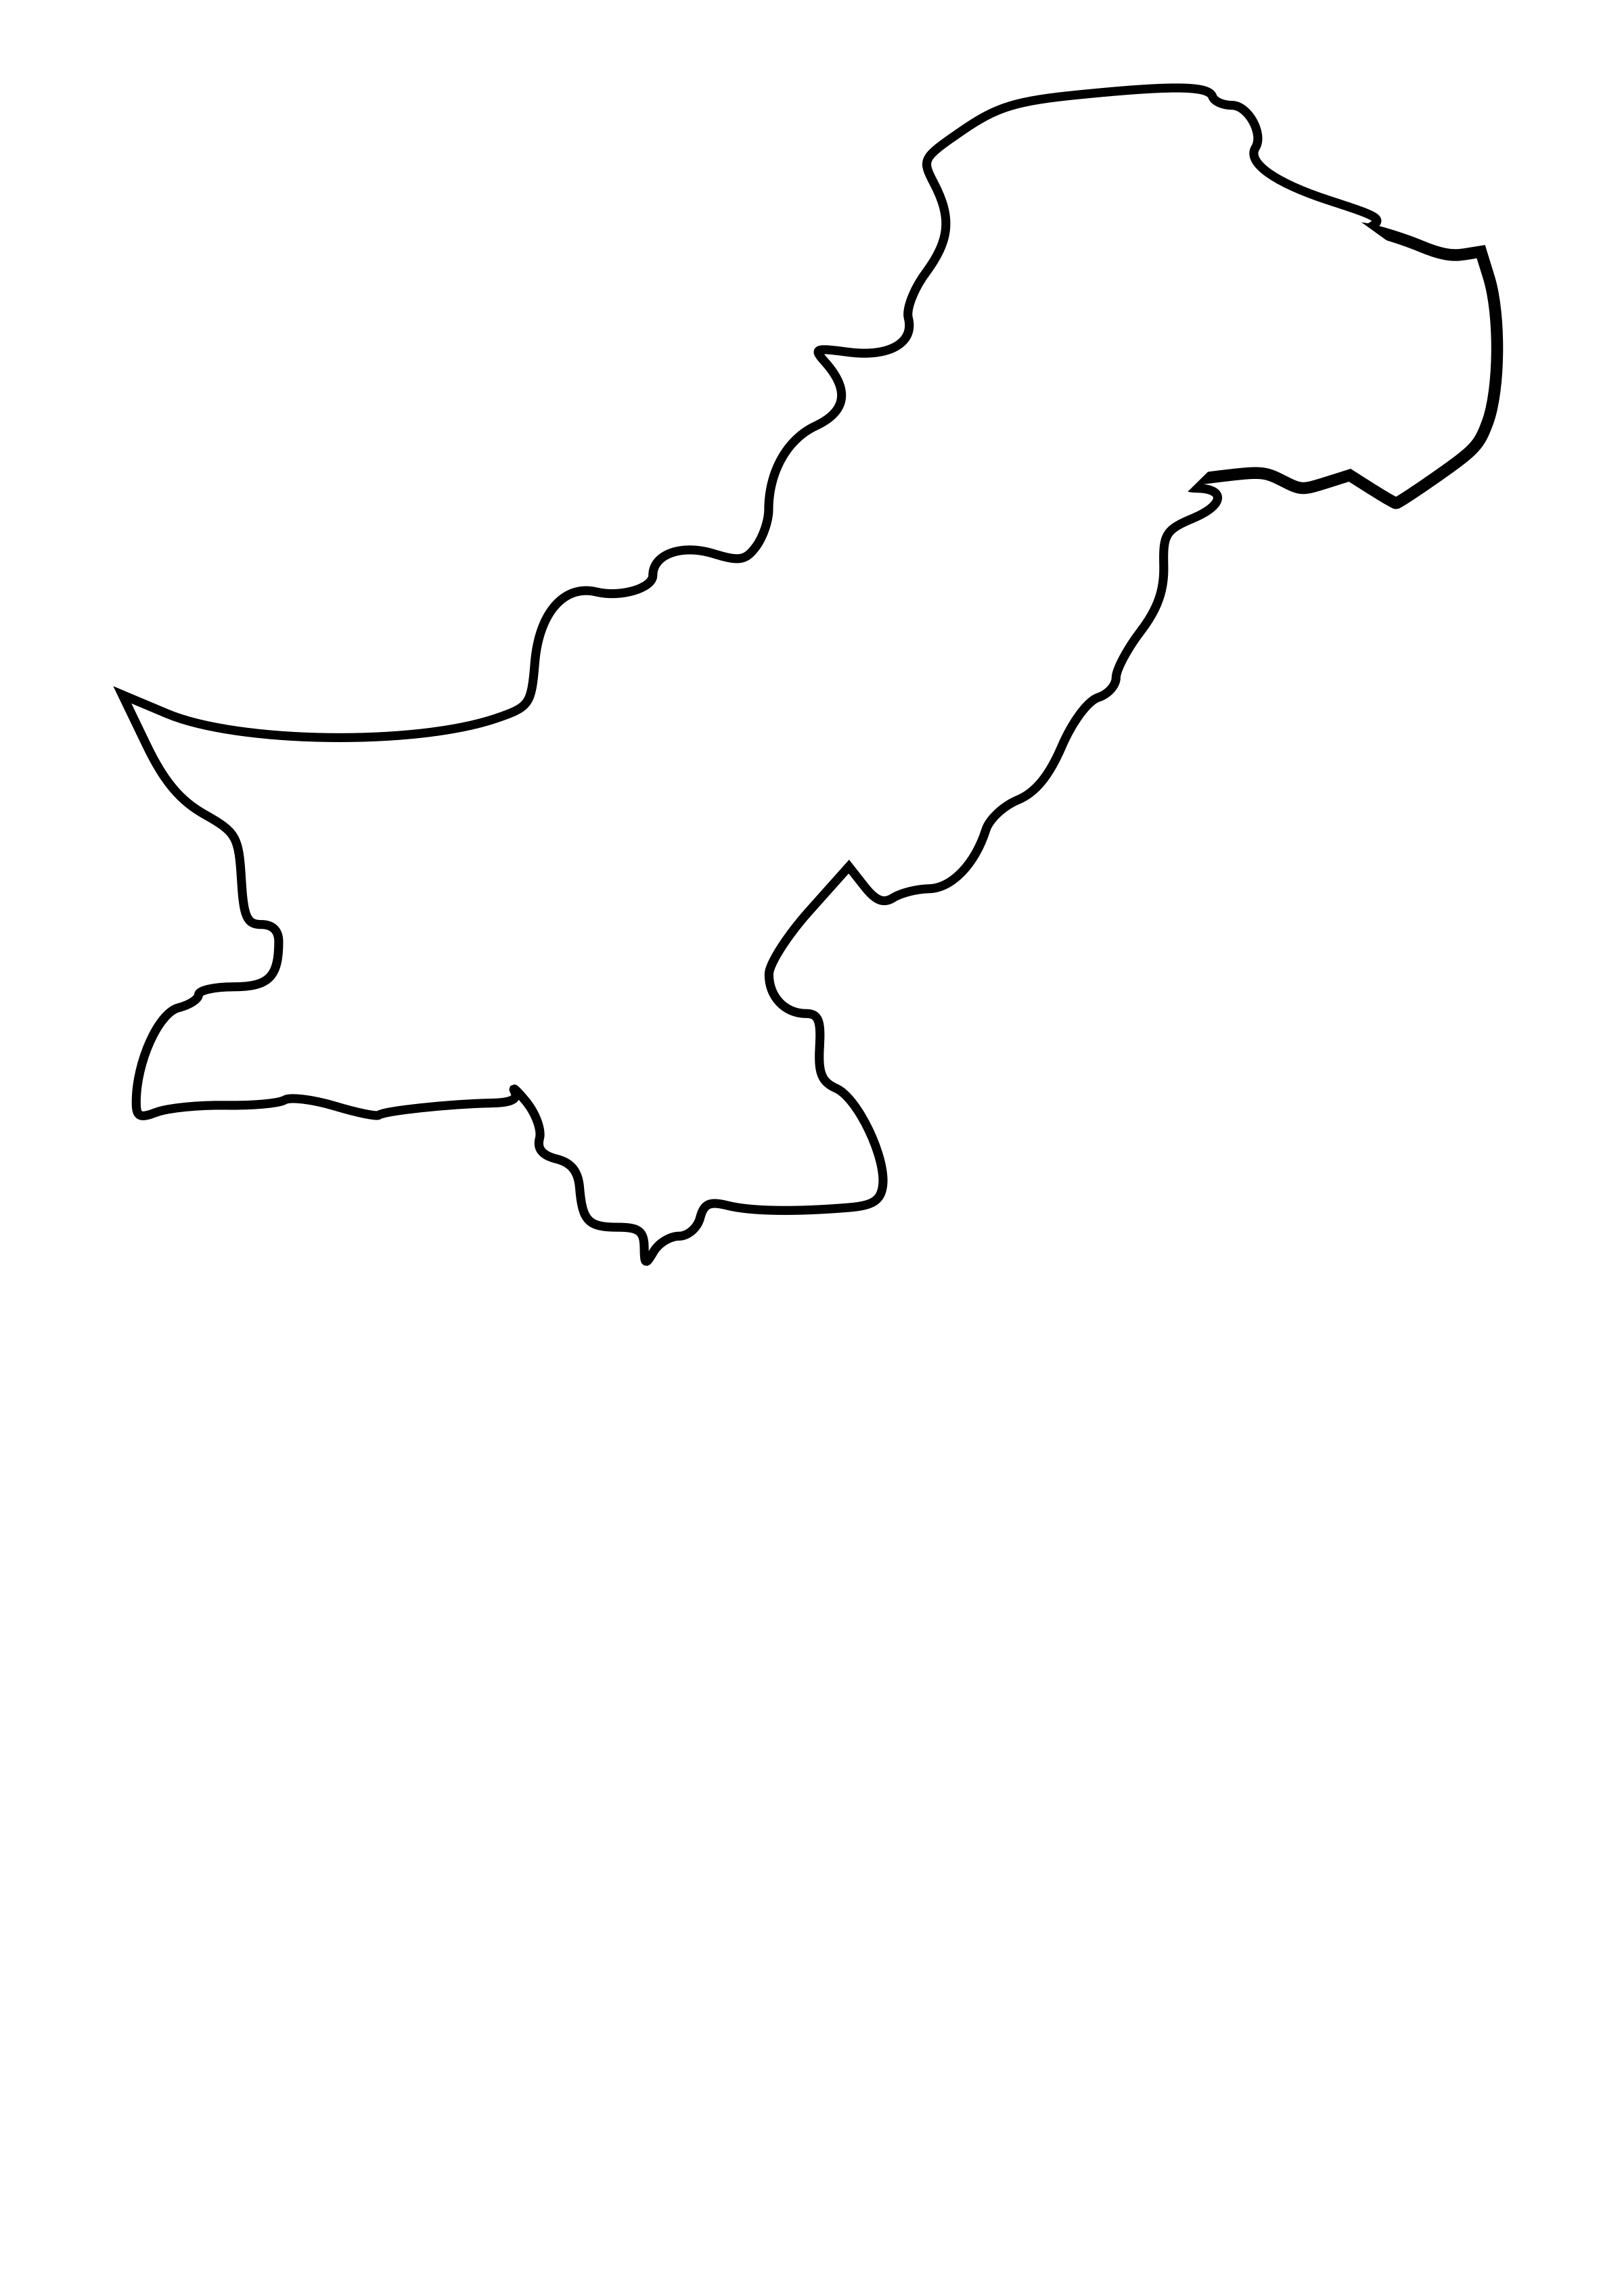 India map outline png. Black of pakistan icons